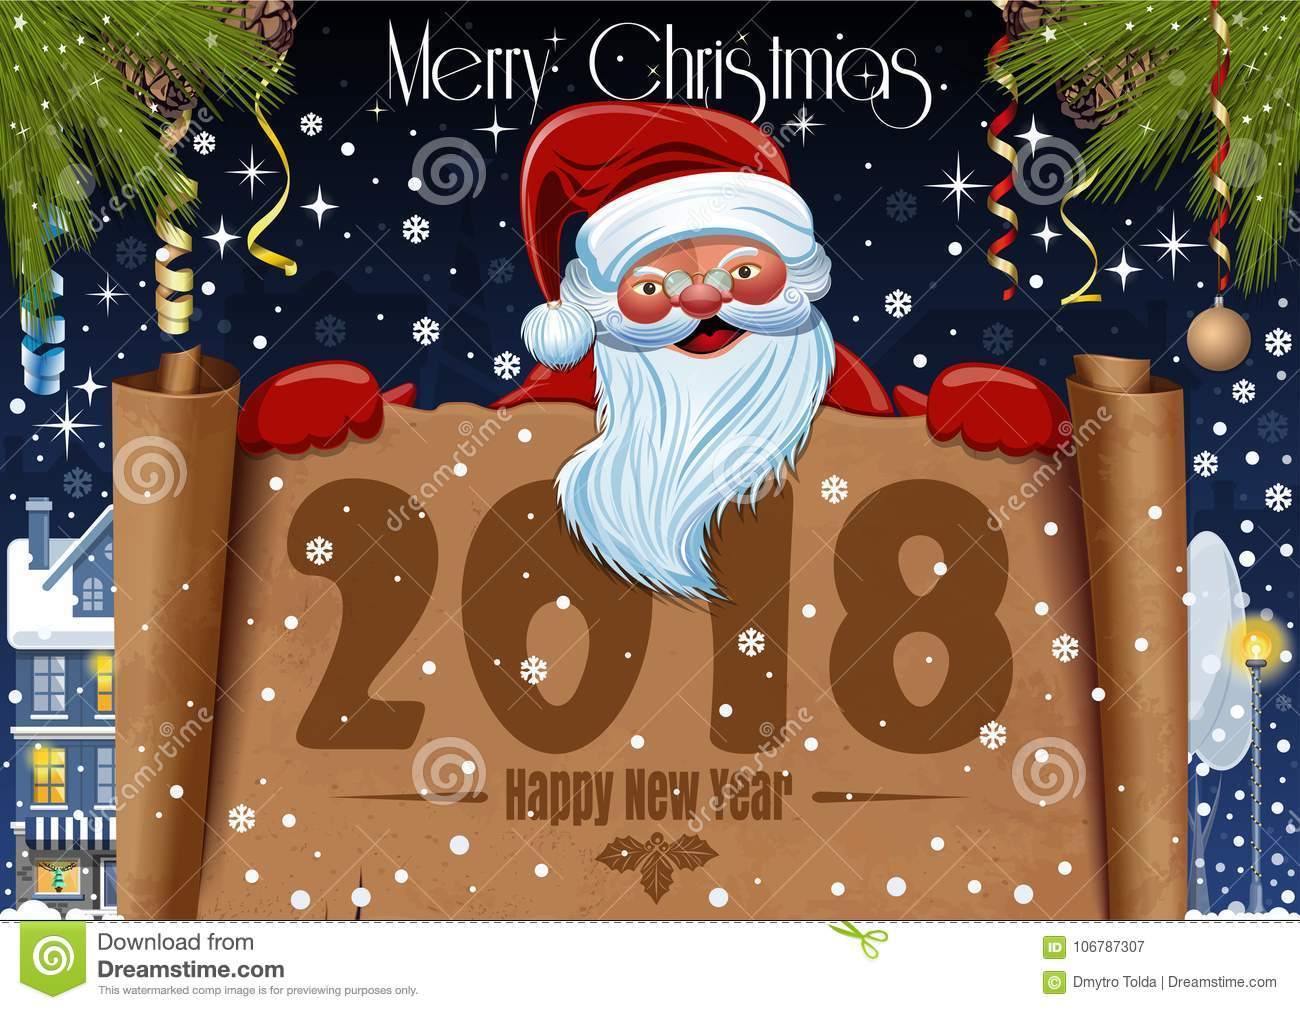 Merry Christmas Poster 2018.Merry Christmas And Happy New Year 2018 Stock Vector